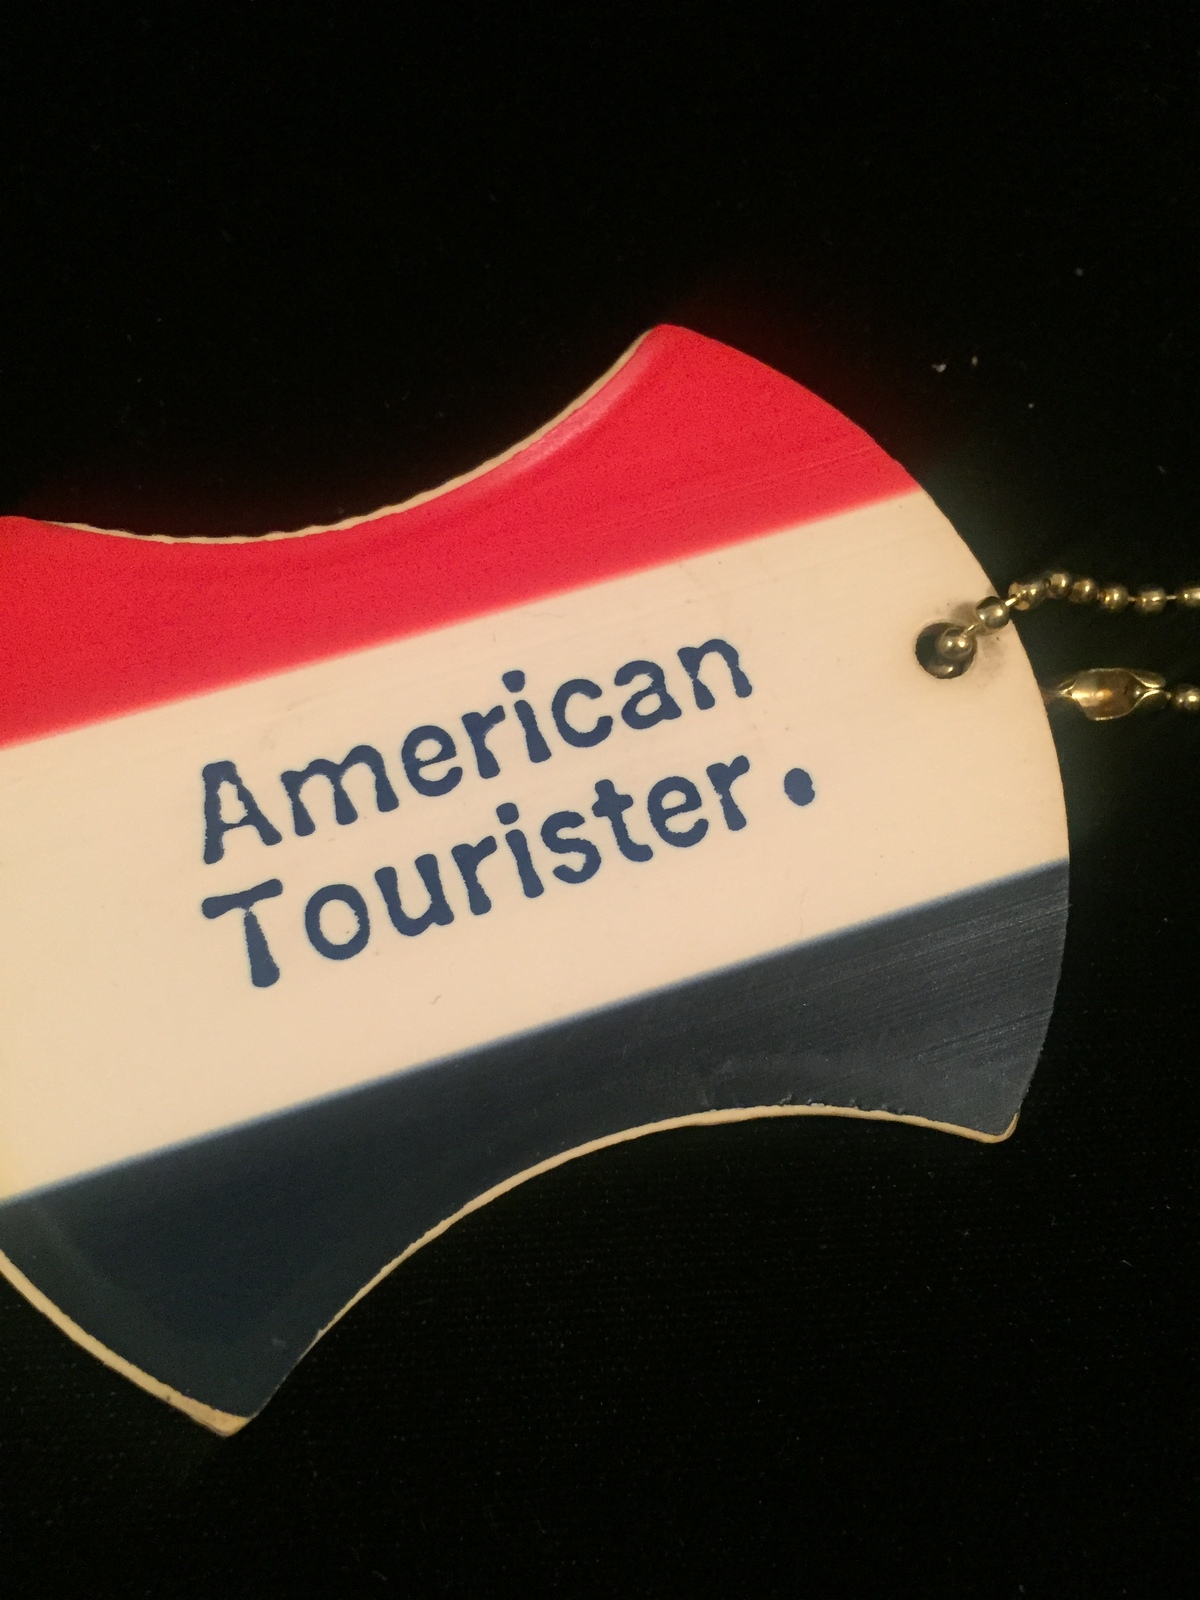 Vintage 70s American Tourister luggage tag (used)